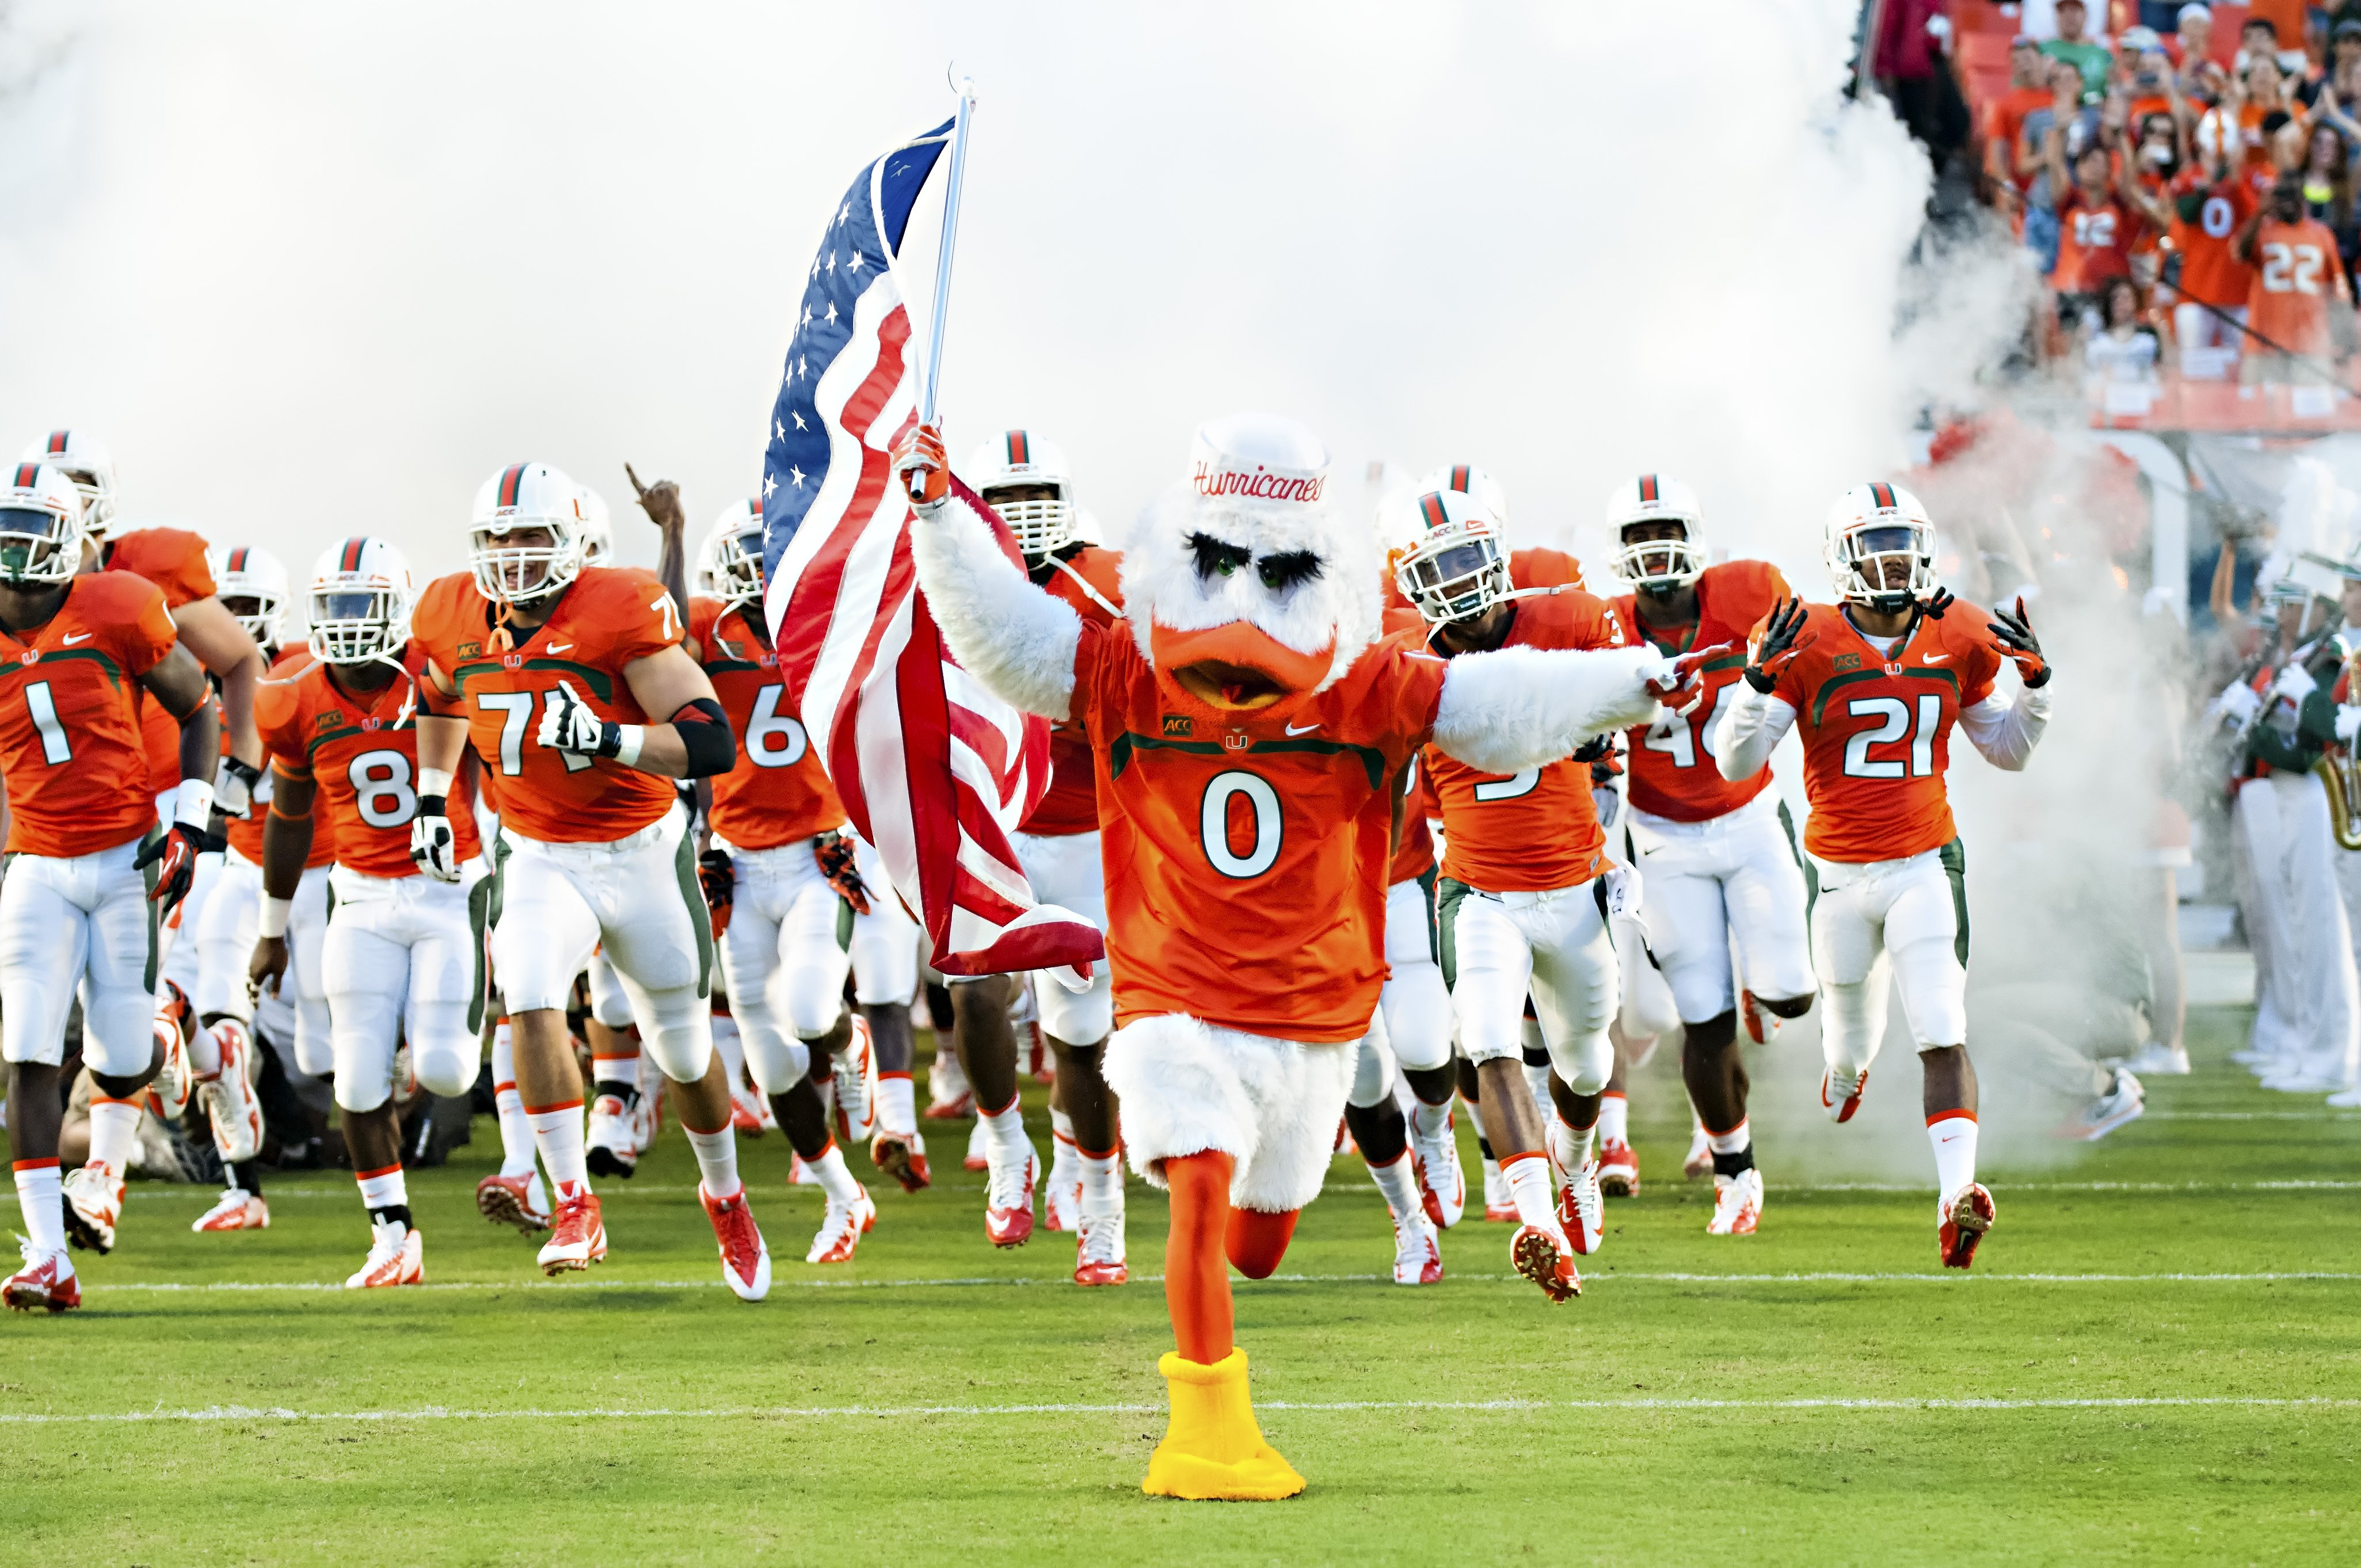 Hurricanes Football Wallpaper Football Miami Hurricanes